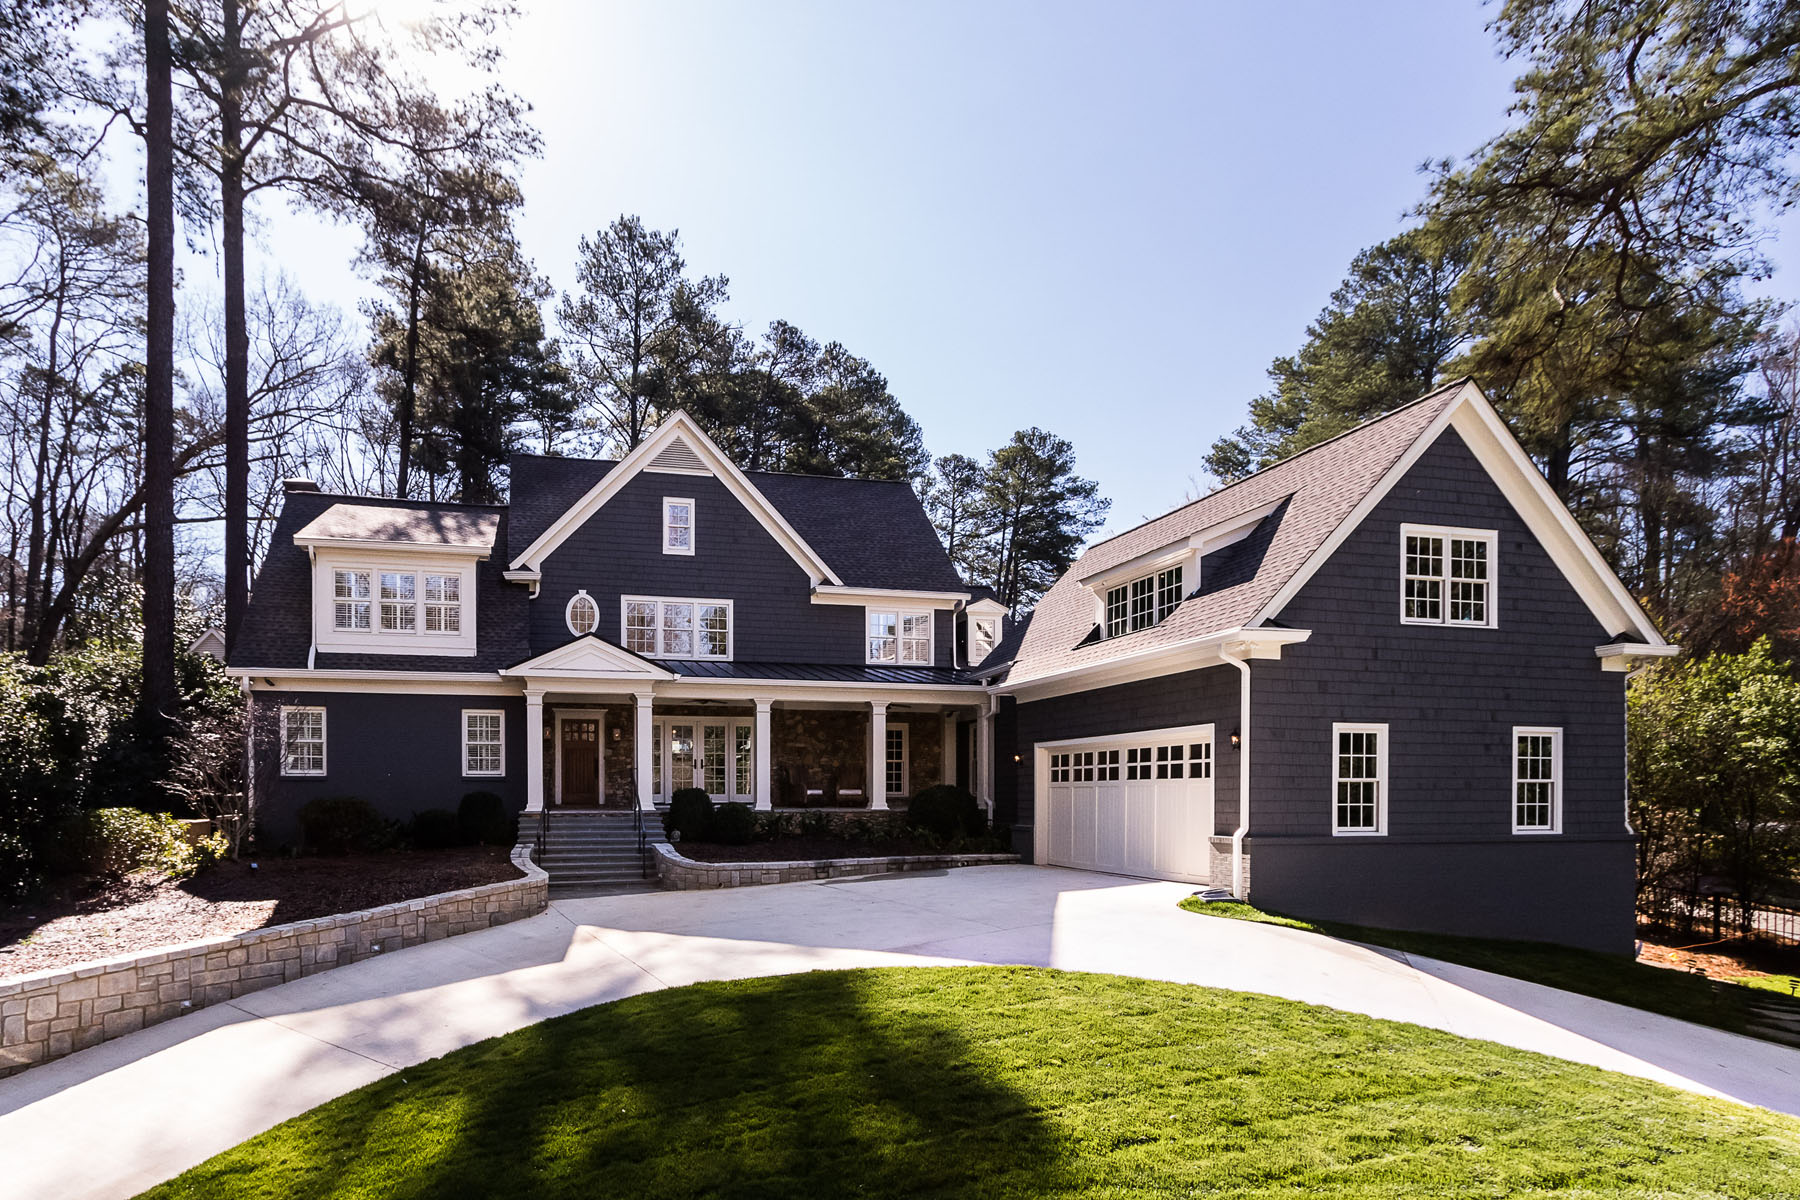 Maison unifamiliale pour l Vente à Stunning Renovation in Historic Brookhaven 975 Winall Down Road Atlanta, Georgia, 30319 États-Unis